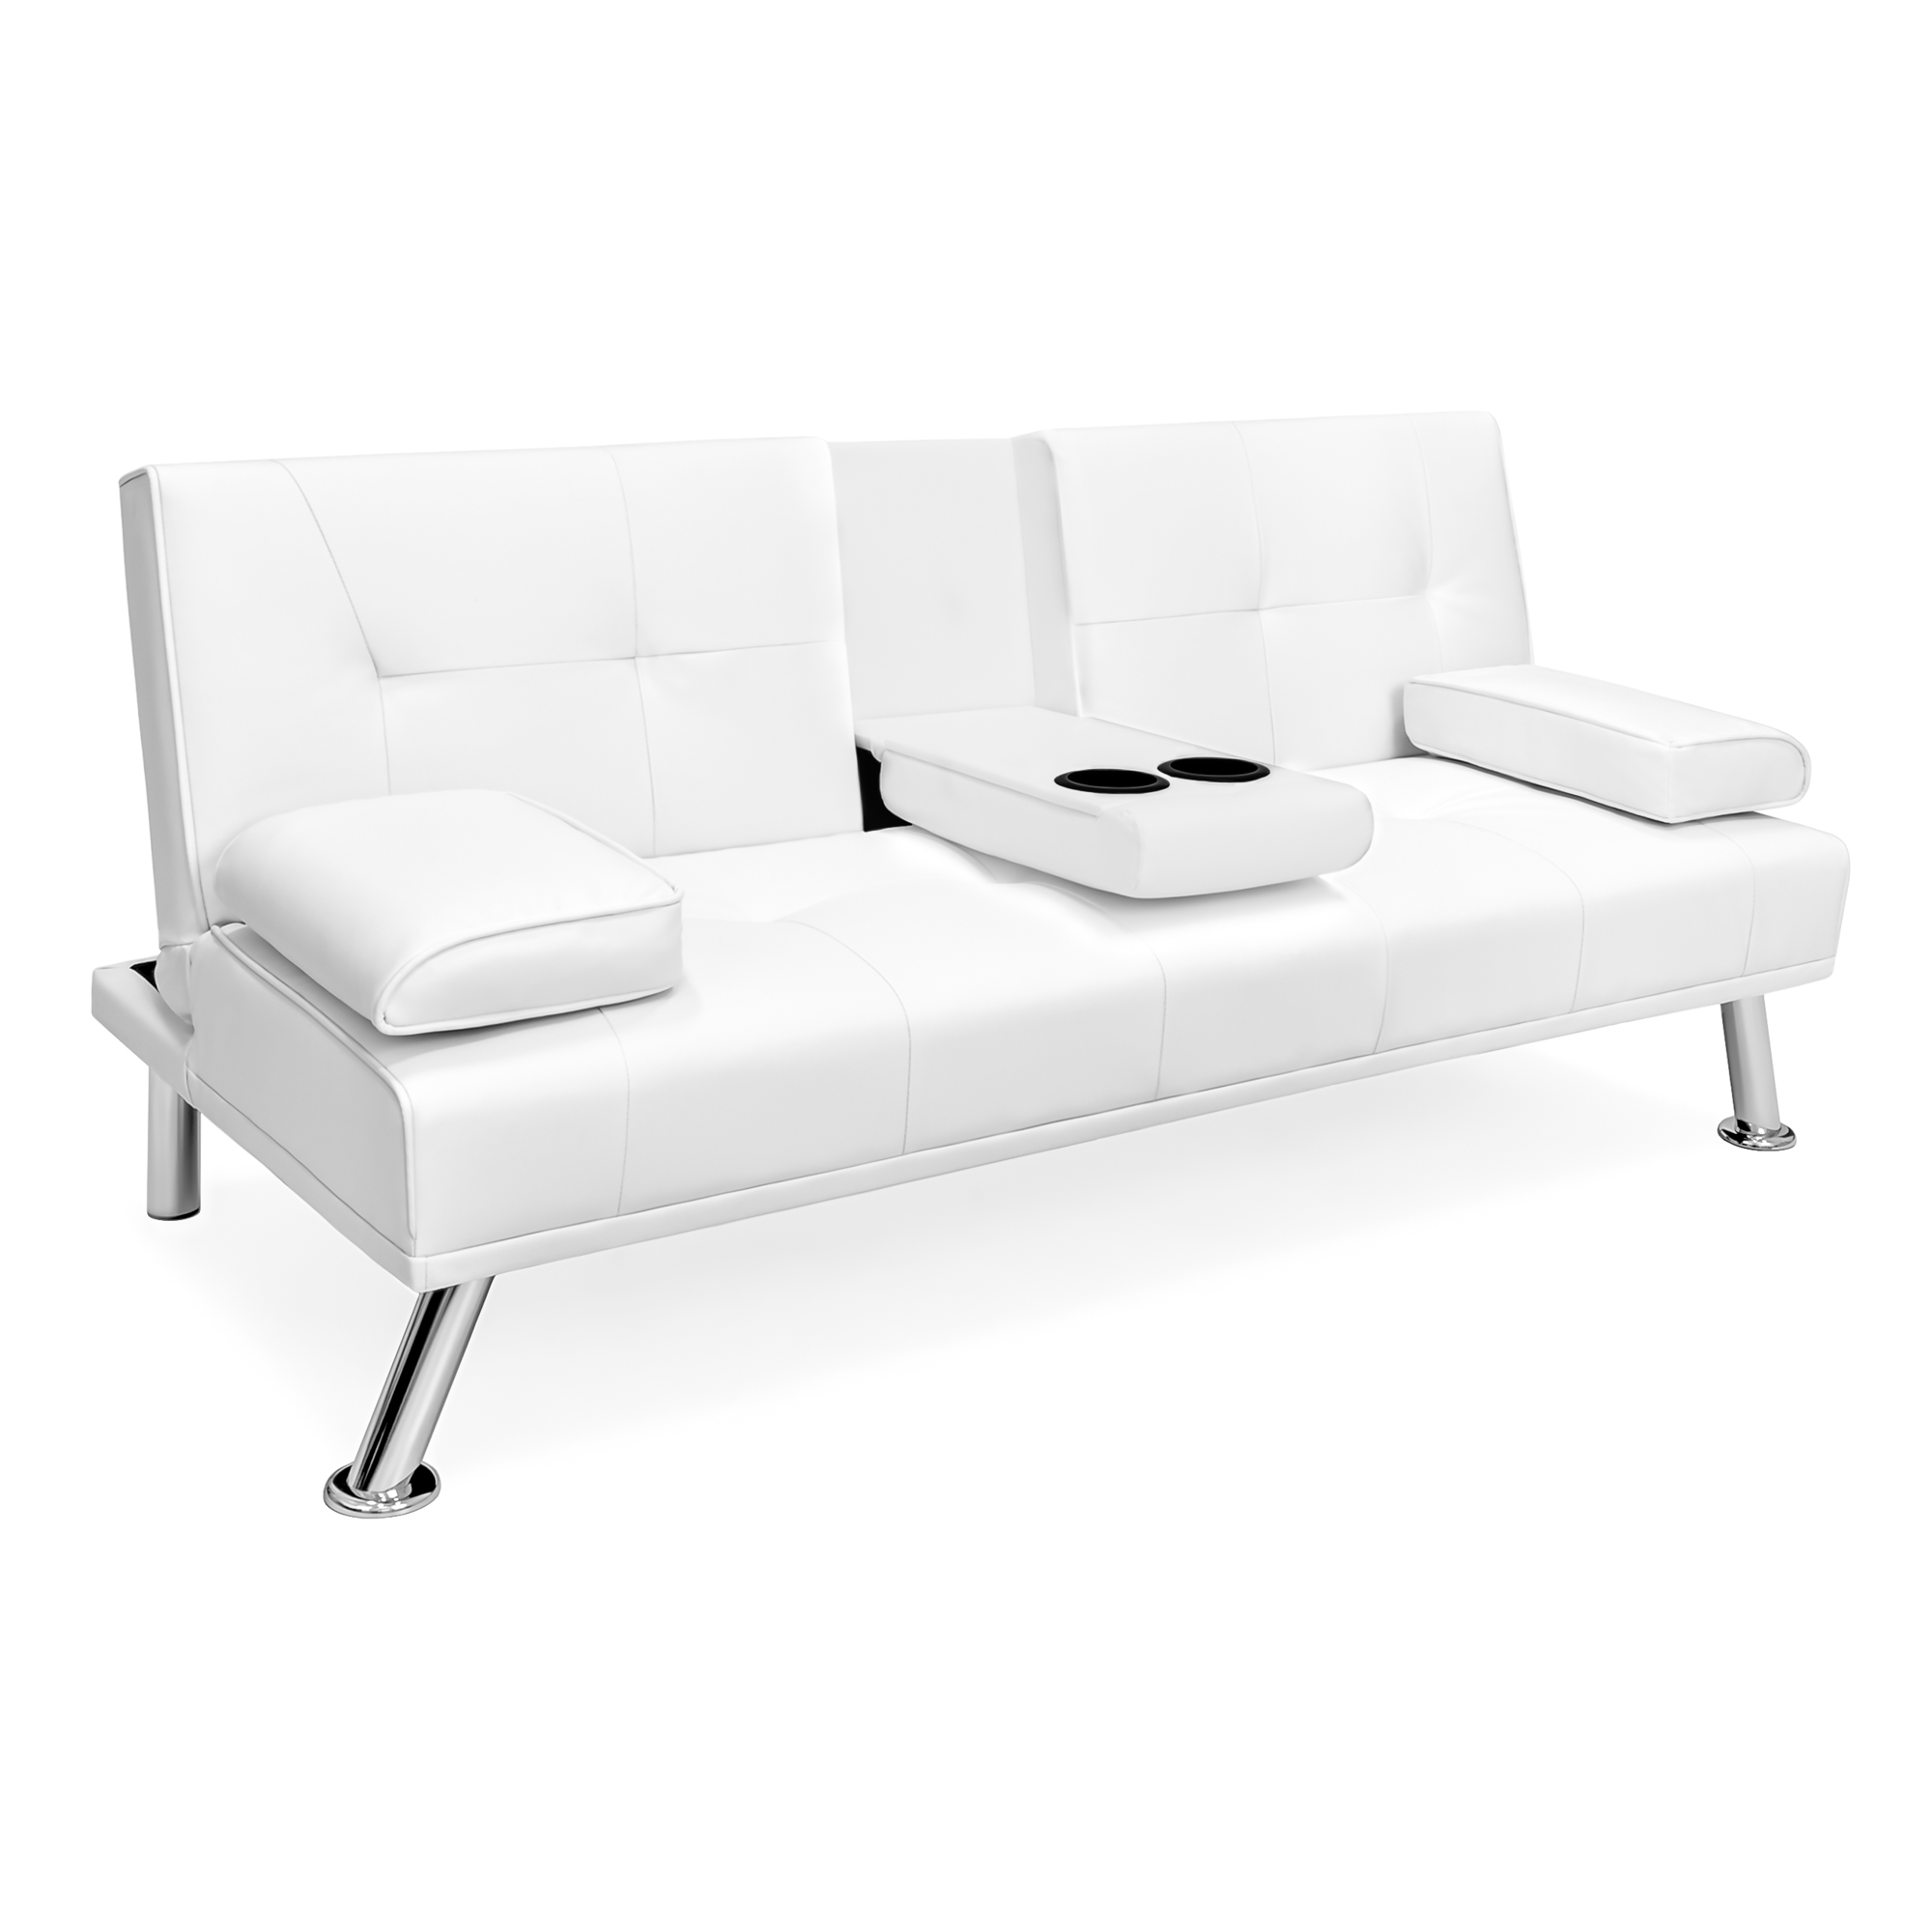 Futon Sleeper Sofa Modern White Faux Leather Fold Down Recliner Cup Holders Wide